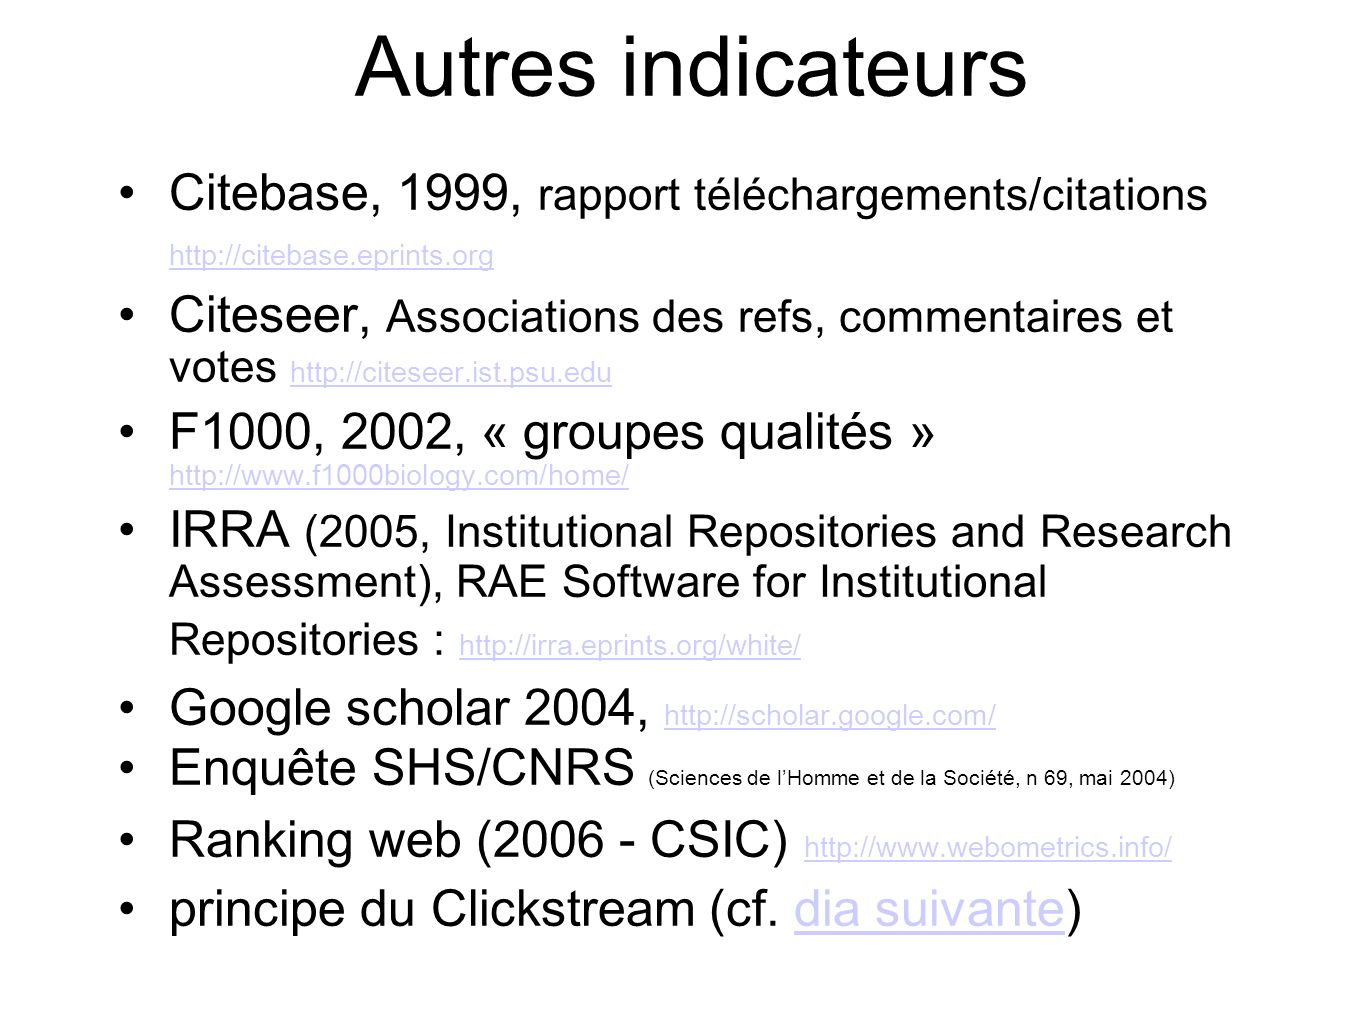 Autres indicateurs Citebase, 1999, rapport téléchargements/citations http://citebase.eprints.org http://citebase.eprints.org Citeseer, Associations des refs, commentaires et votes http://citeseer.ist.psu.edu http://citeseer.ist.psu.edu F1000, 2002, « groupes qualités » http://www.f1000biology.com/home/ http://www.f1000biology.com/home/ IRRA (2005, Institutional Repositories and Research Assessment), RAE Software for Institutional Repositories : http://irra.eprints.org/white/ http://irra.eprints.org/white/ Google scholar 2004, http://scholar.google.com/ http://scholar.google.com/ Enquête SHS/CNRS (Sciences de lHomme et de la Société, n 69, mai 2004) Ranking web (2006 - CSIC) http://www.webometrics.info/ http://www.webometrics.info/ principe du Clickstream (cf.